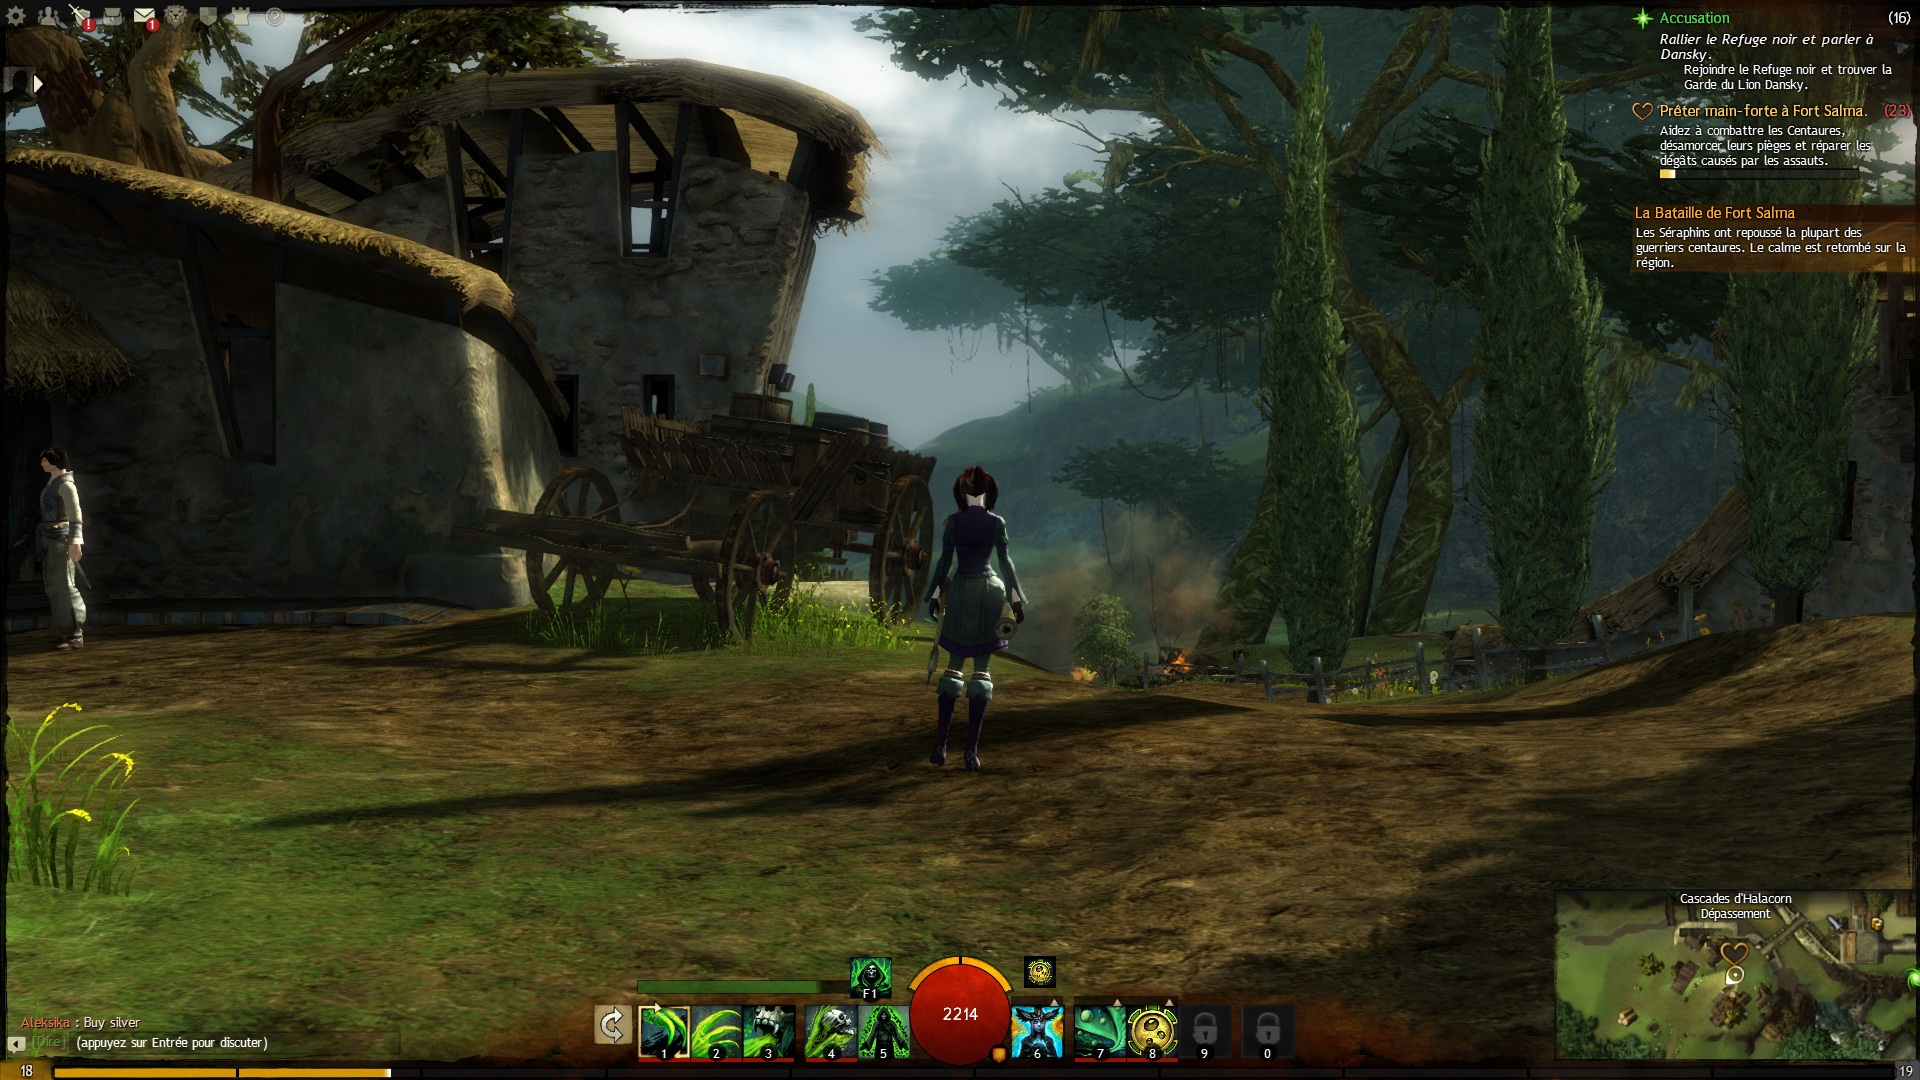 [TEST] Guild Wars 2 sur PC